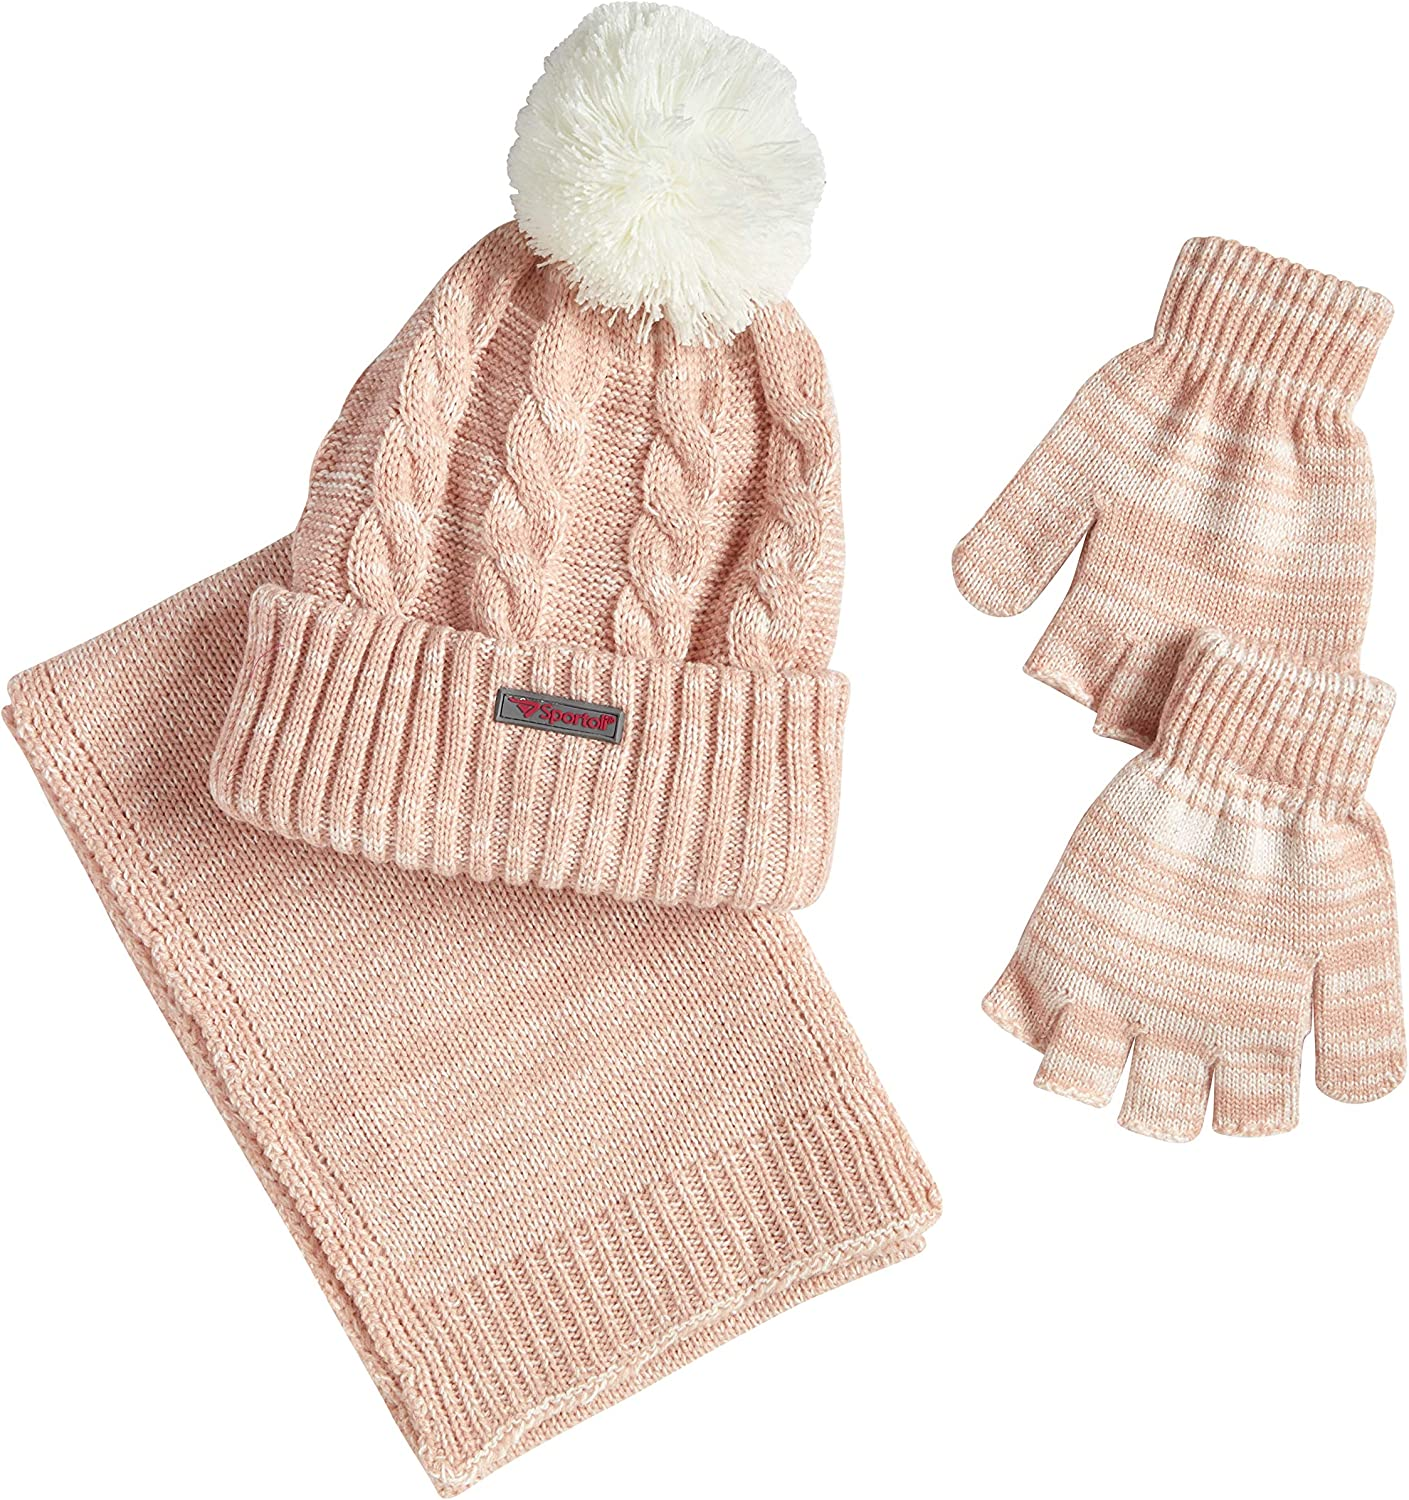 Sportoli Women/'s Girls/' kids 3-Piece Cable Knit Cold Weather Set Hat Scarf Glove